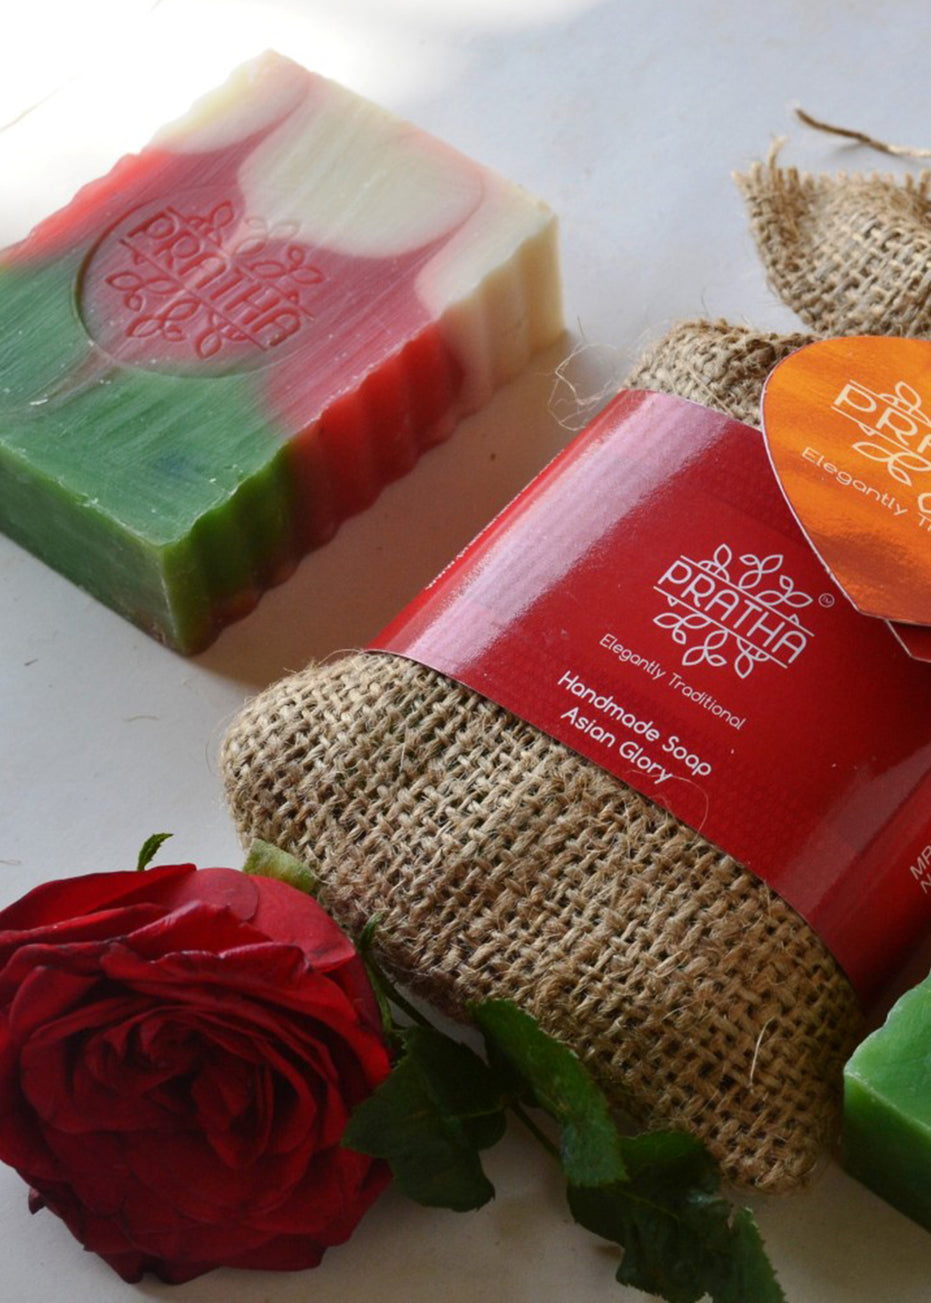 Pratha Naturals Asian Glory Handmade Soap, handmade soap, Pratha Naturals, ihaat, [made_in_india], [handmade] - ihaat